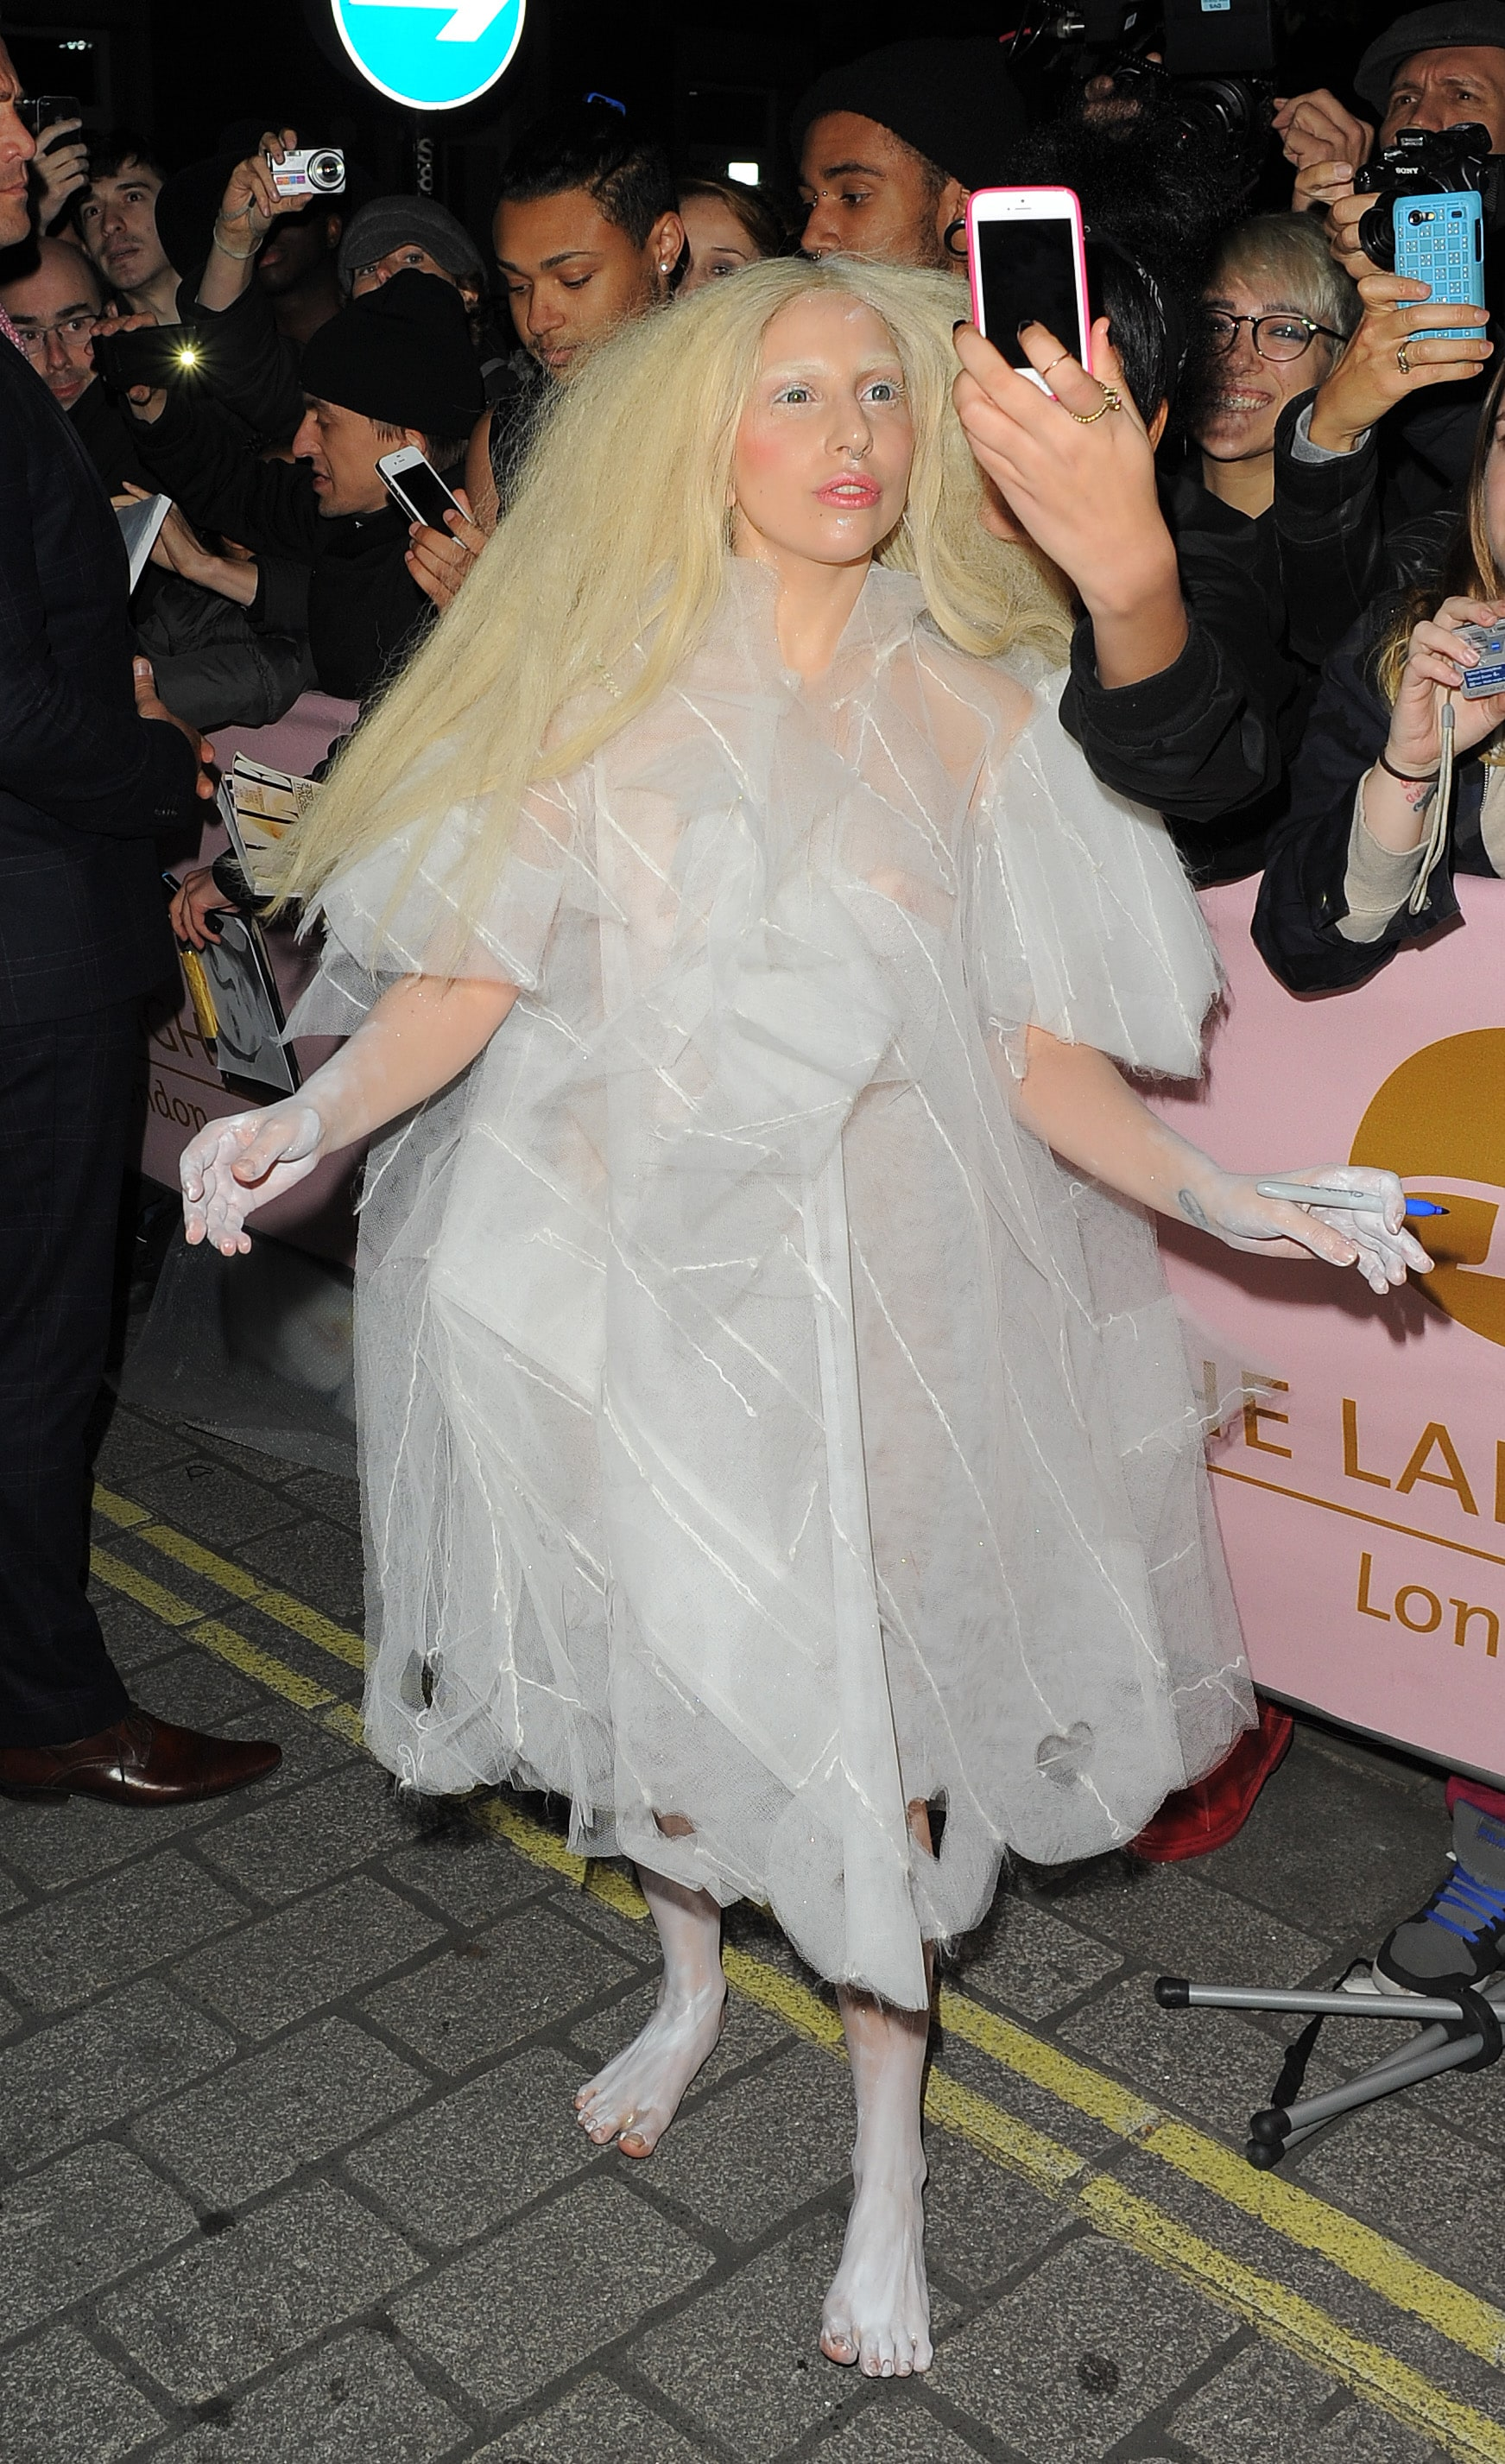 Lady Gaga Arrives at London Heathrow